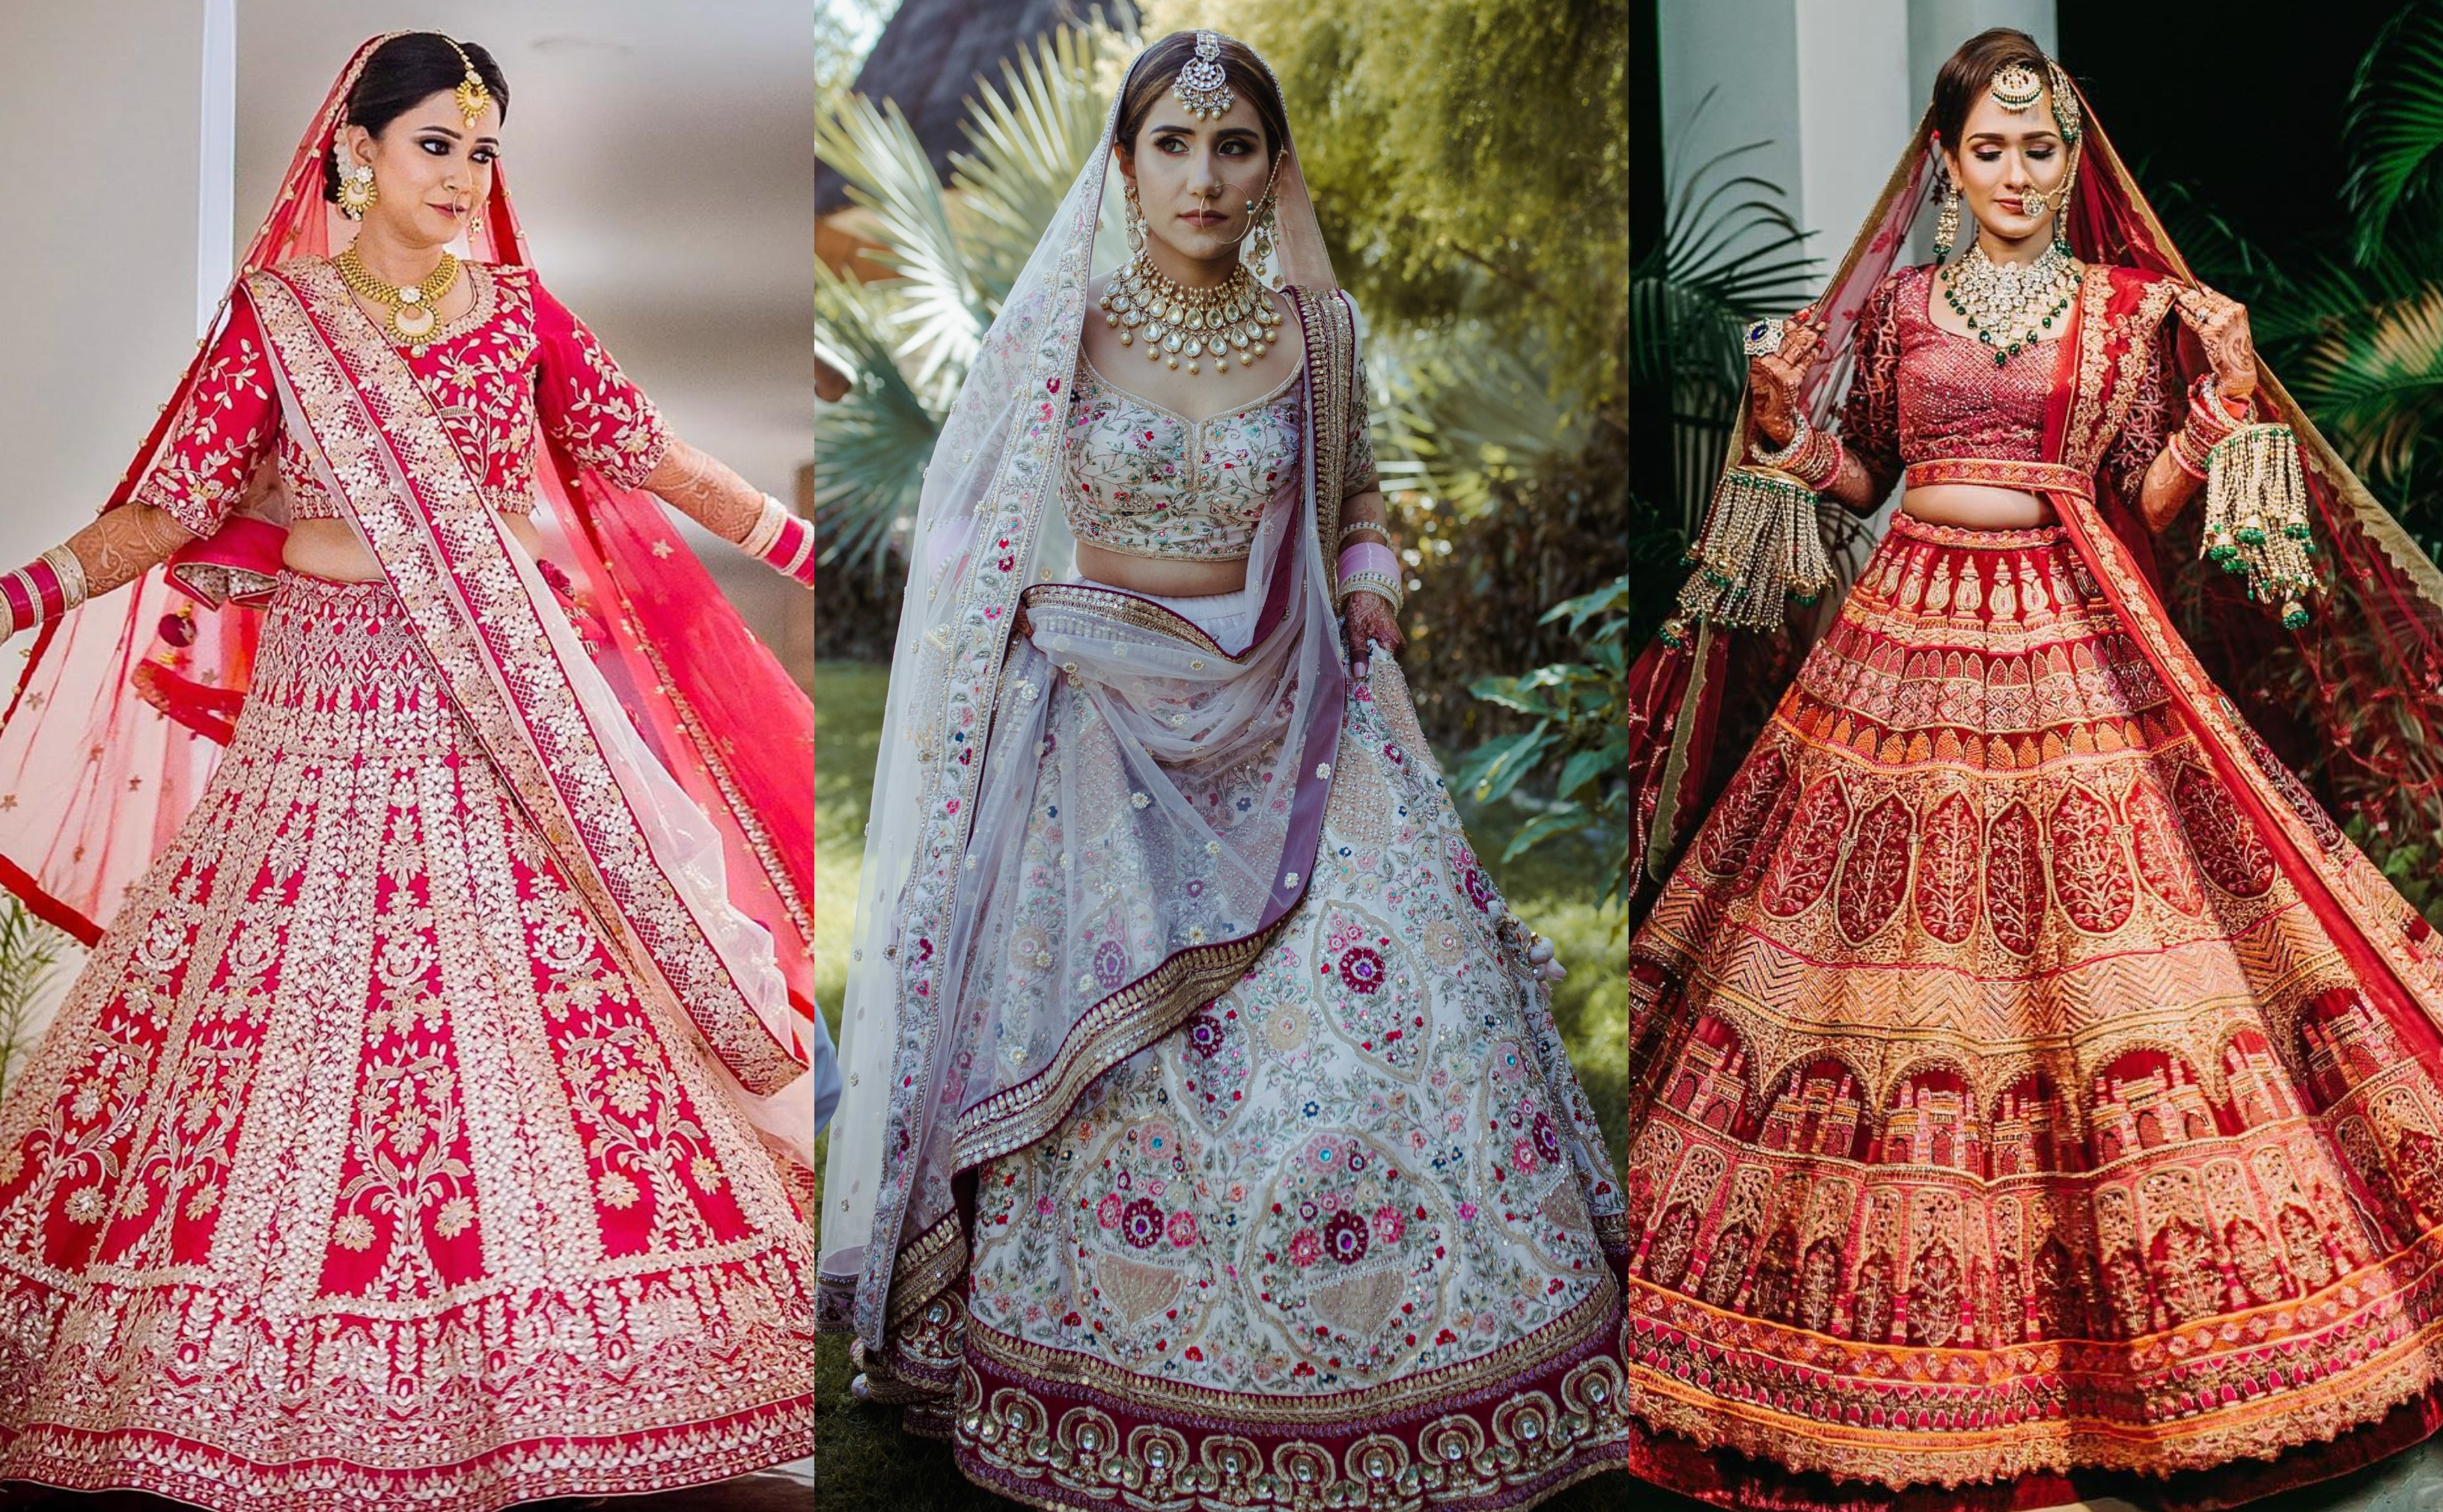 15 Best Bridal Lehenga Shops in Chandni Chowk for Every Budget ...